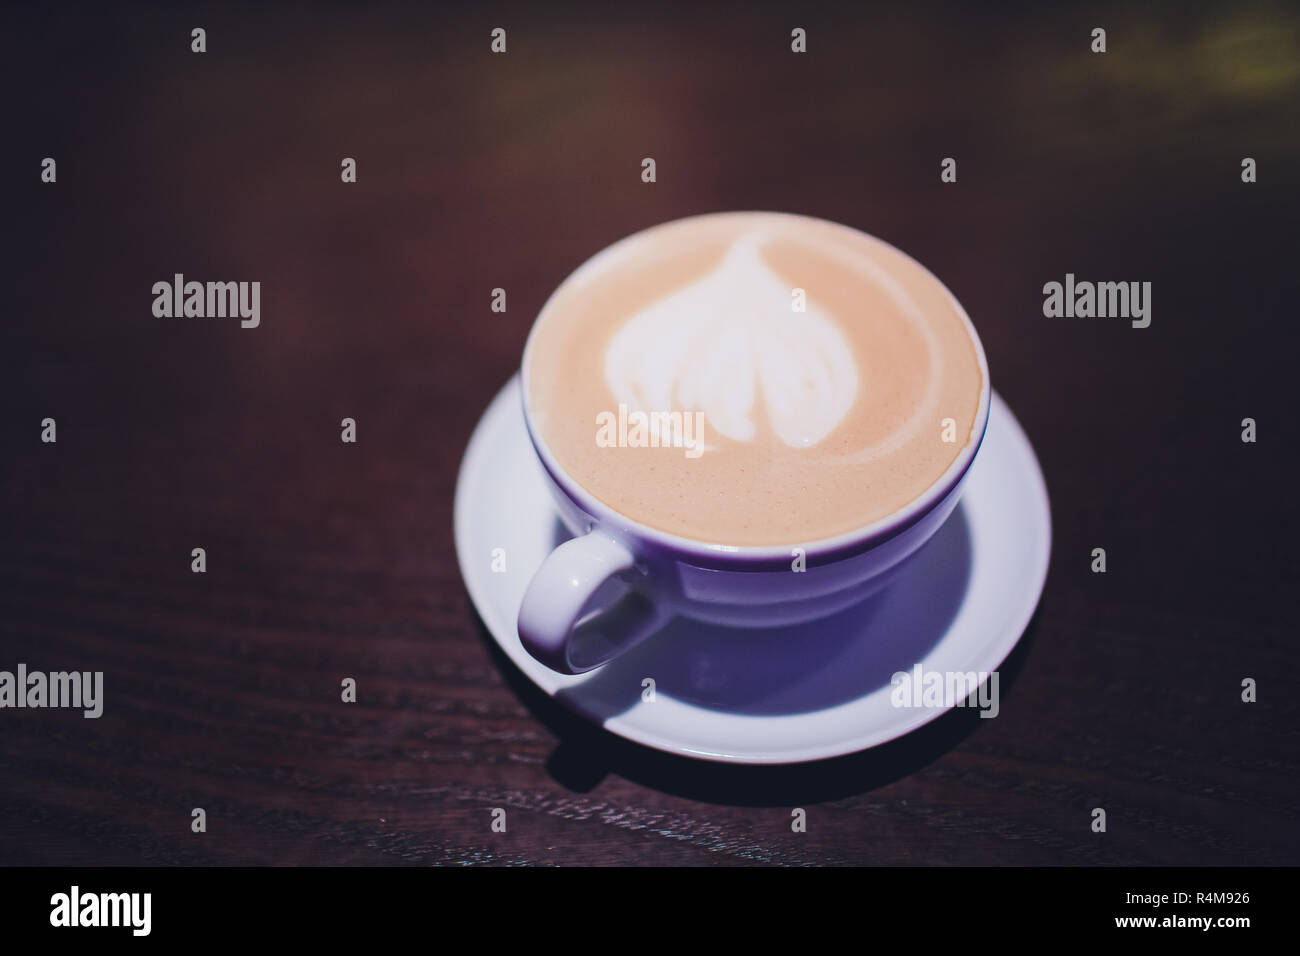 Coffee cup of Cafe' latte with heart latte art on top. Stock Photo